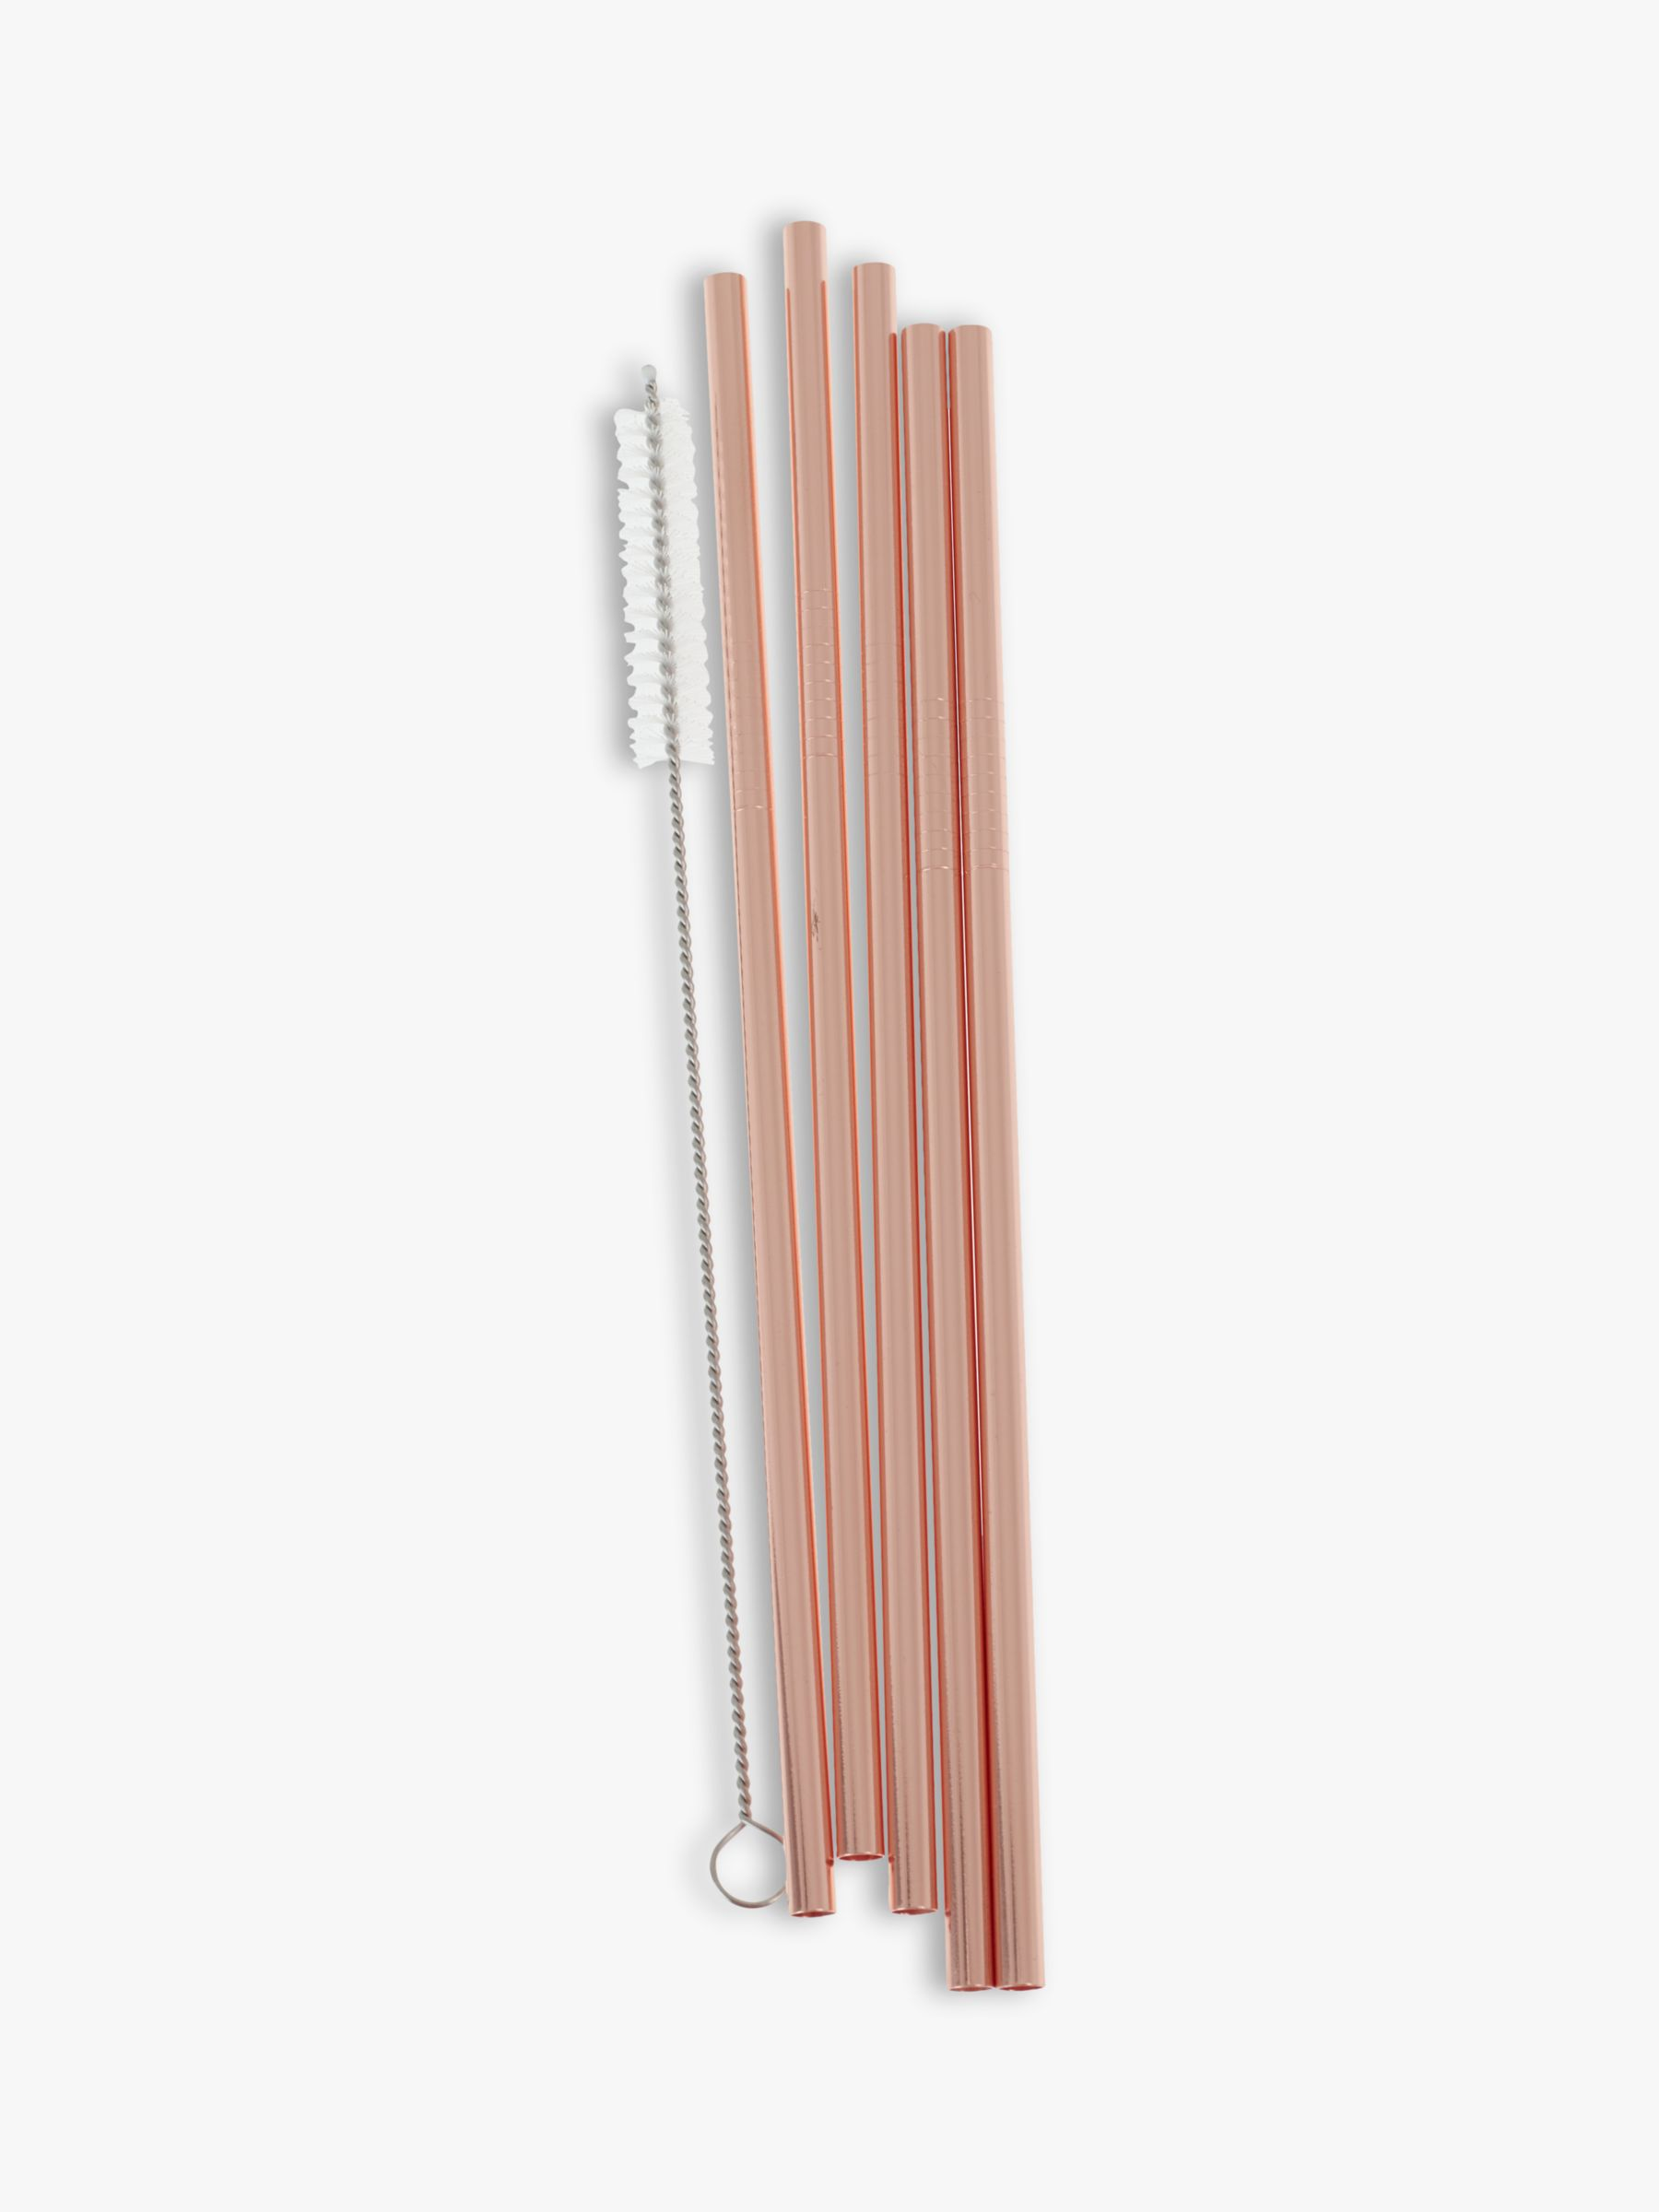 Ginger Ray Ginger Ray Rose Gold Stainless Steel Straws, Pack of 5